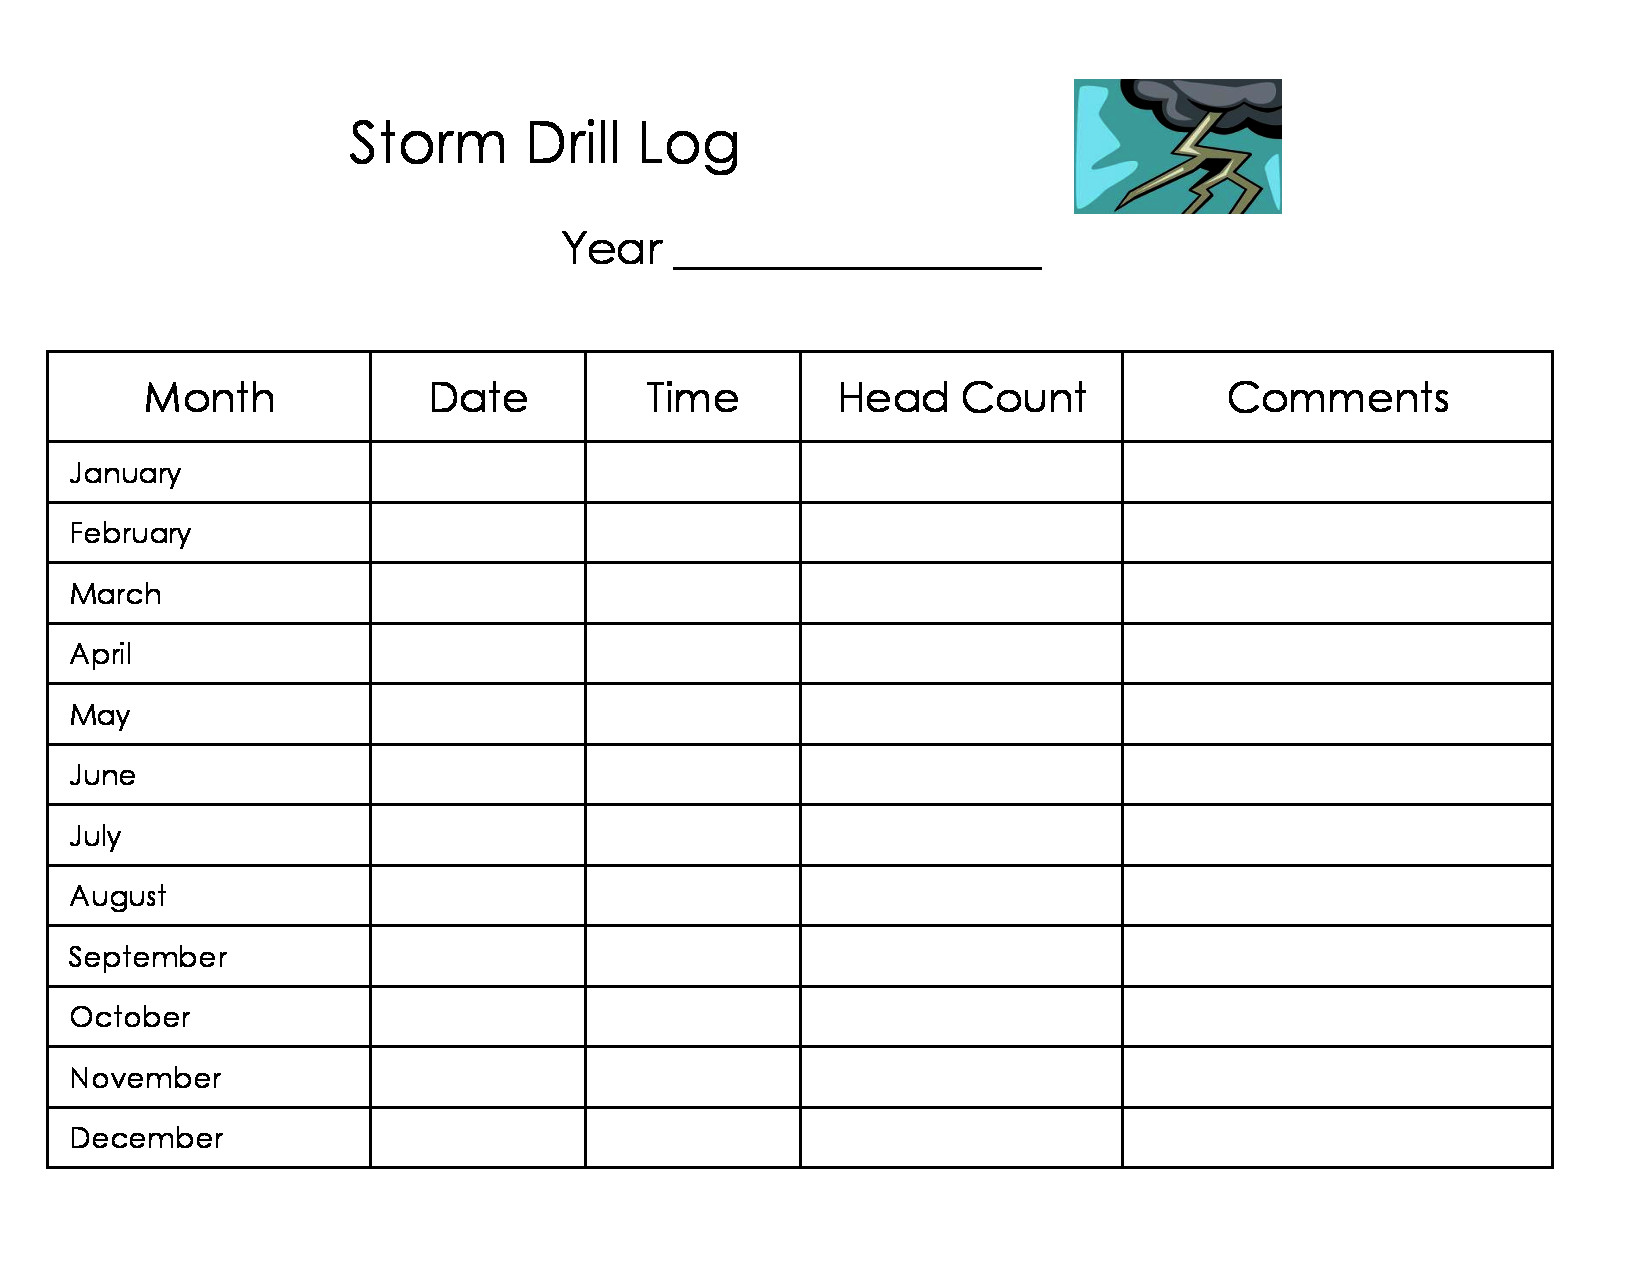 graphic relating to Printable Daycare Forms named Printable Dwelling Daycare Varieties - Storm/Fireplace Drill Logs